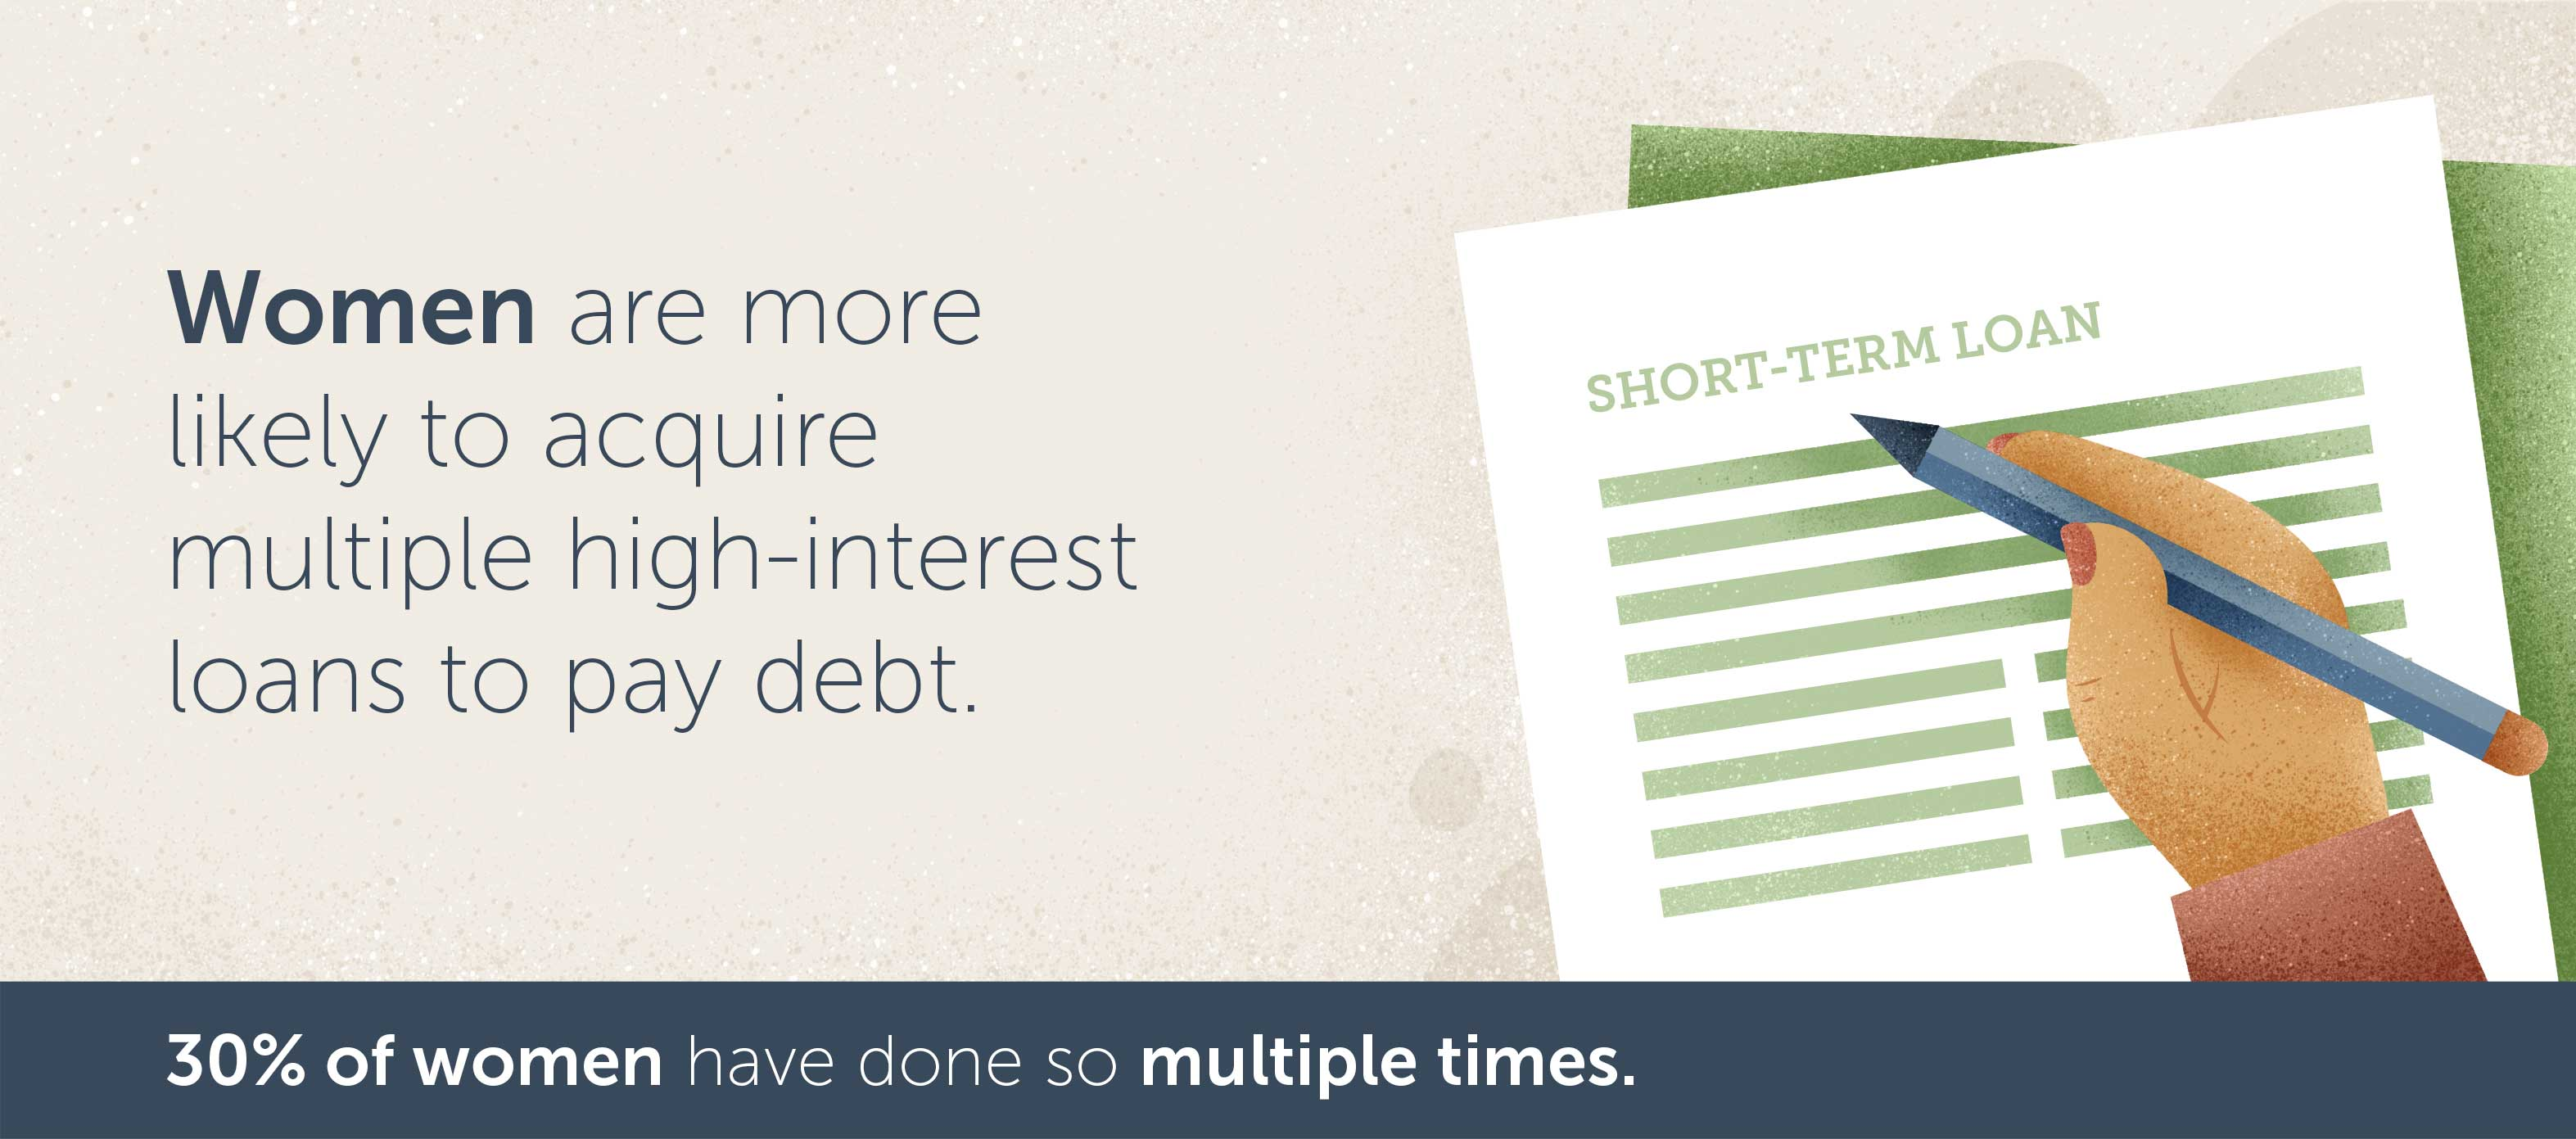 Women are more likely acquire multiple high interest loans to pay debt